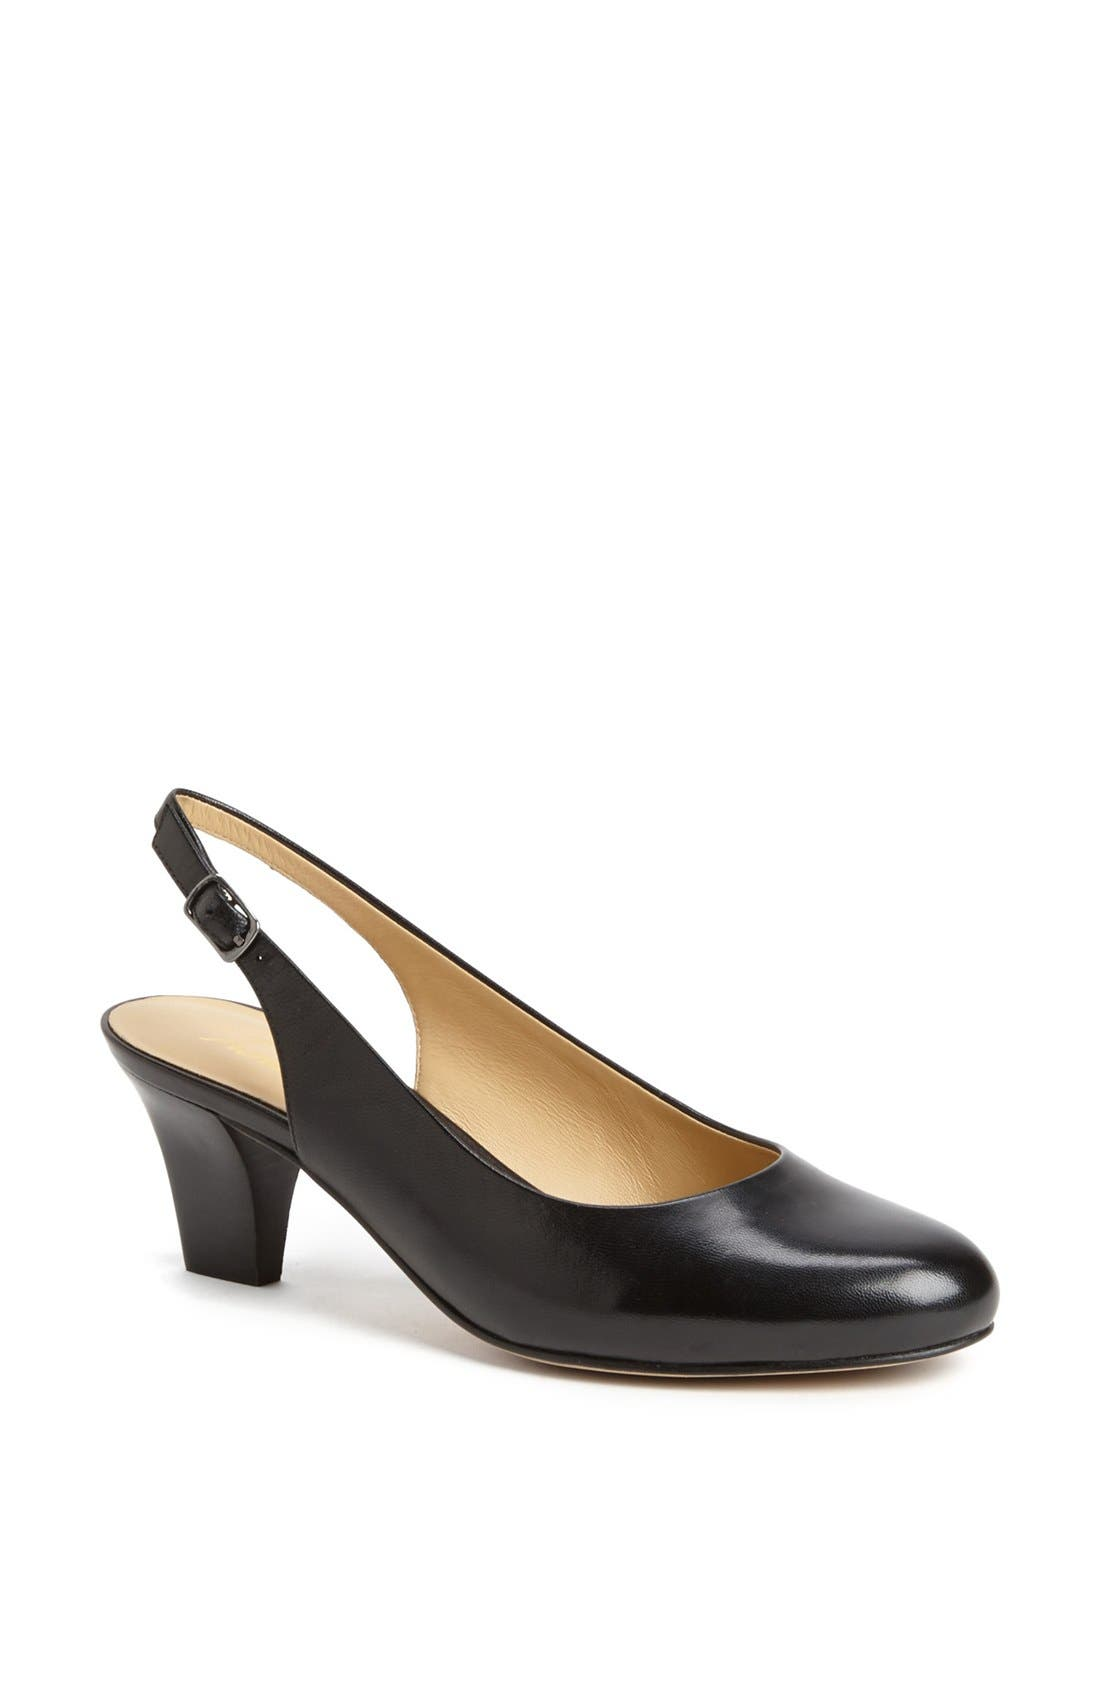 'Pella' Slingback Pump,                         Main,                         color, 001